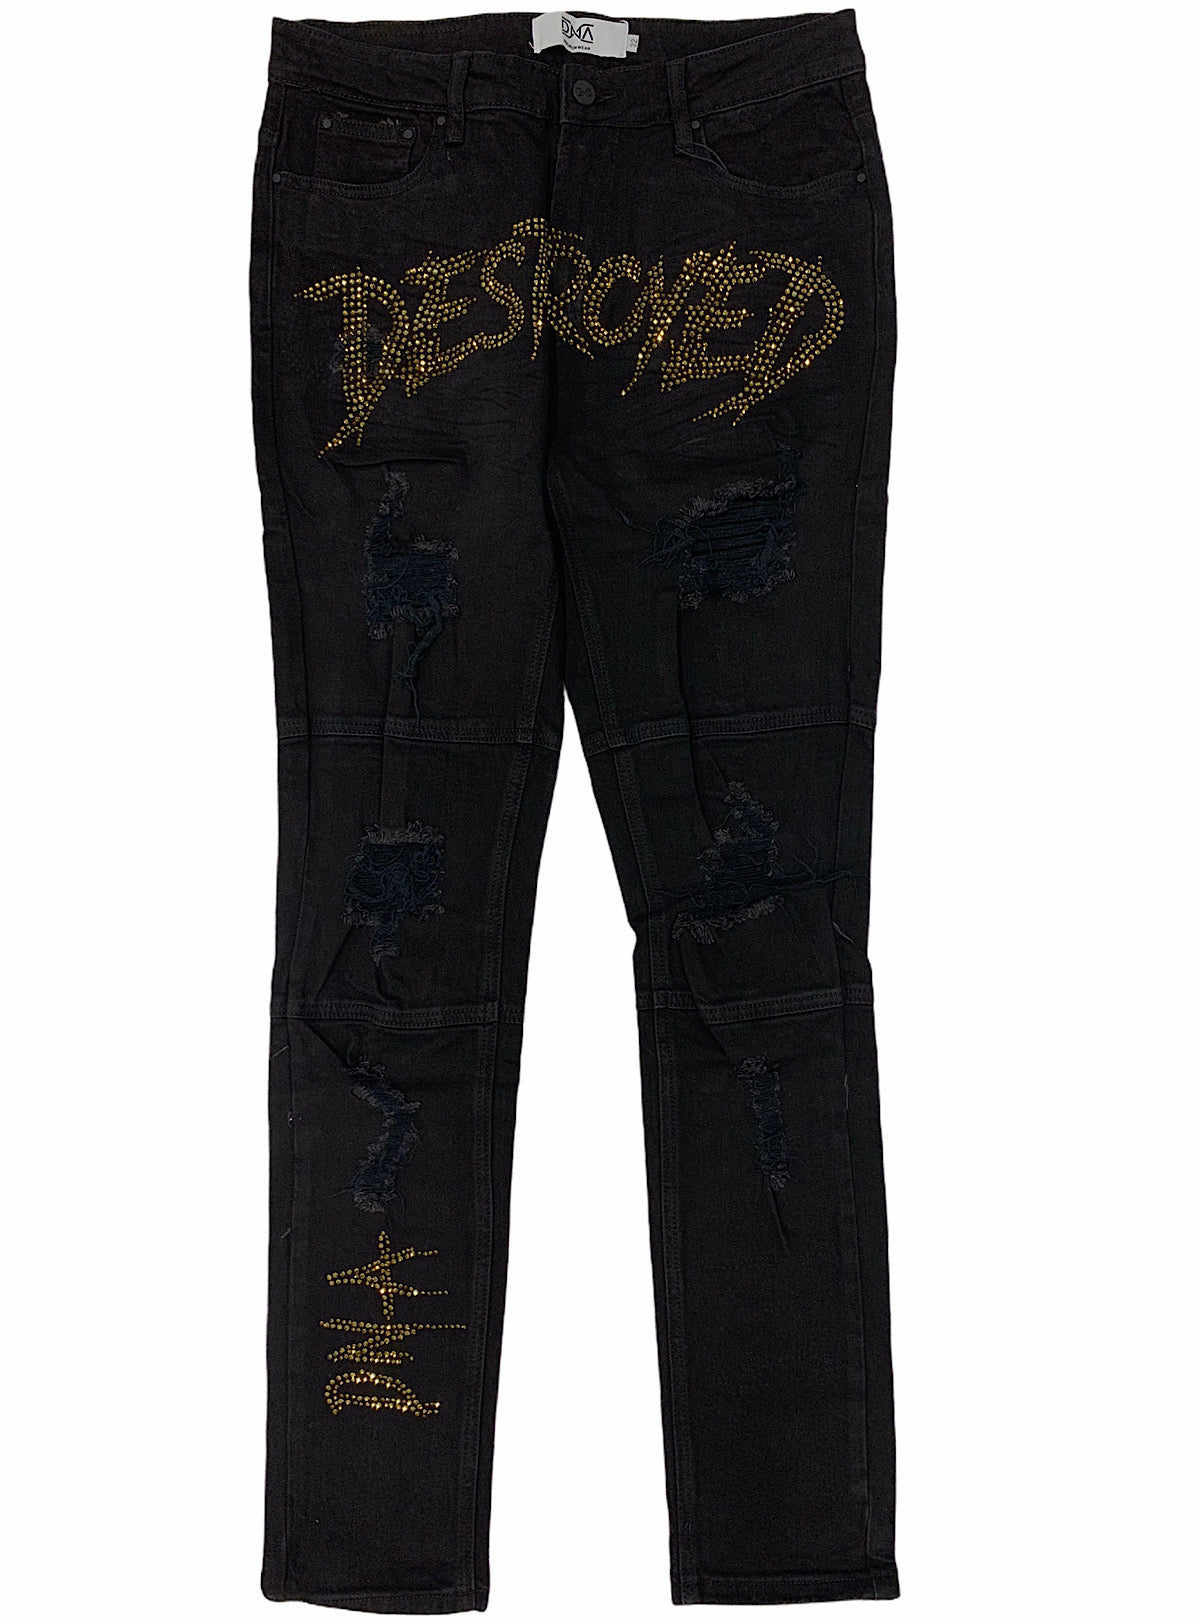 DNA Jeans - Destroyed - Black/Gold